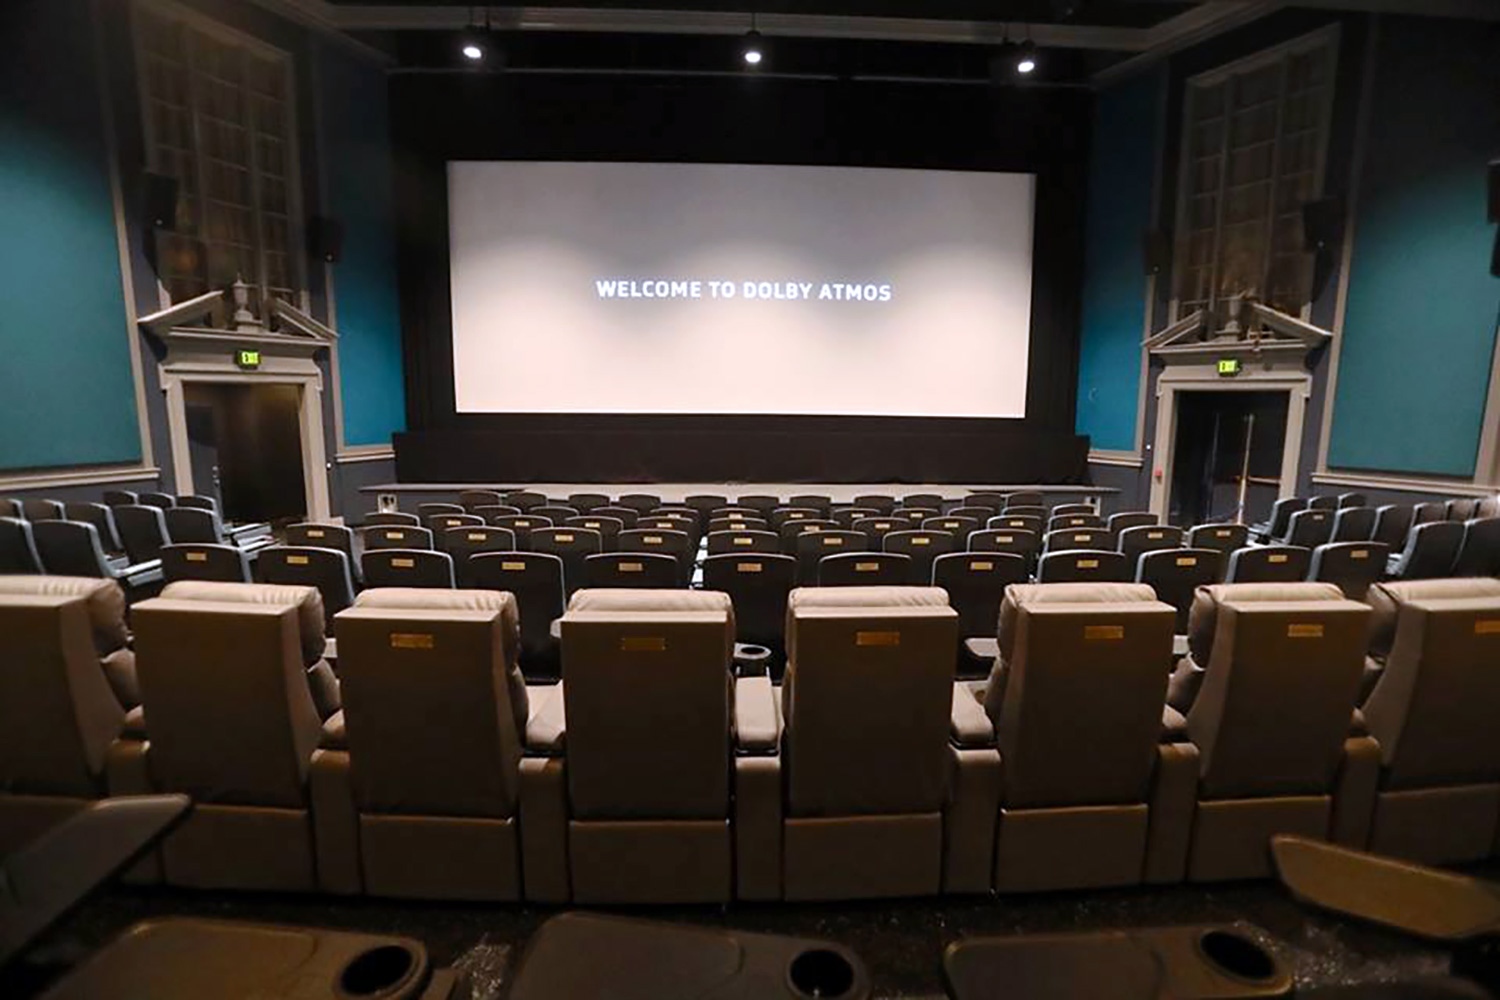 The Bedford Playhouse/Clive Davis Arts Center is a classic movie theater in the final stages of a total renovation. WSDG is providing complete acoustic and A/V design and consultation for the complex.Main Dolby Atmos Theater Screen View 2